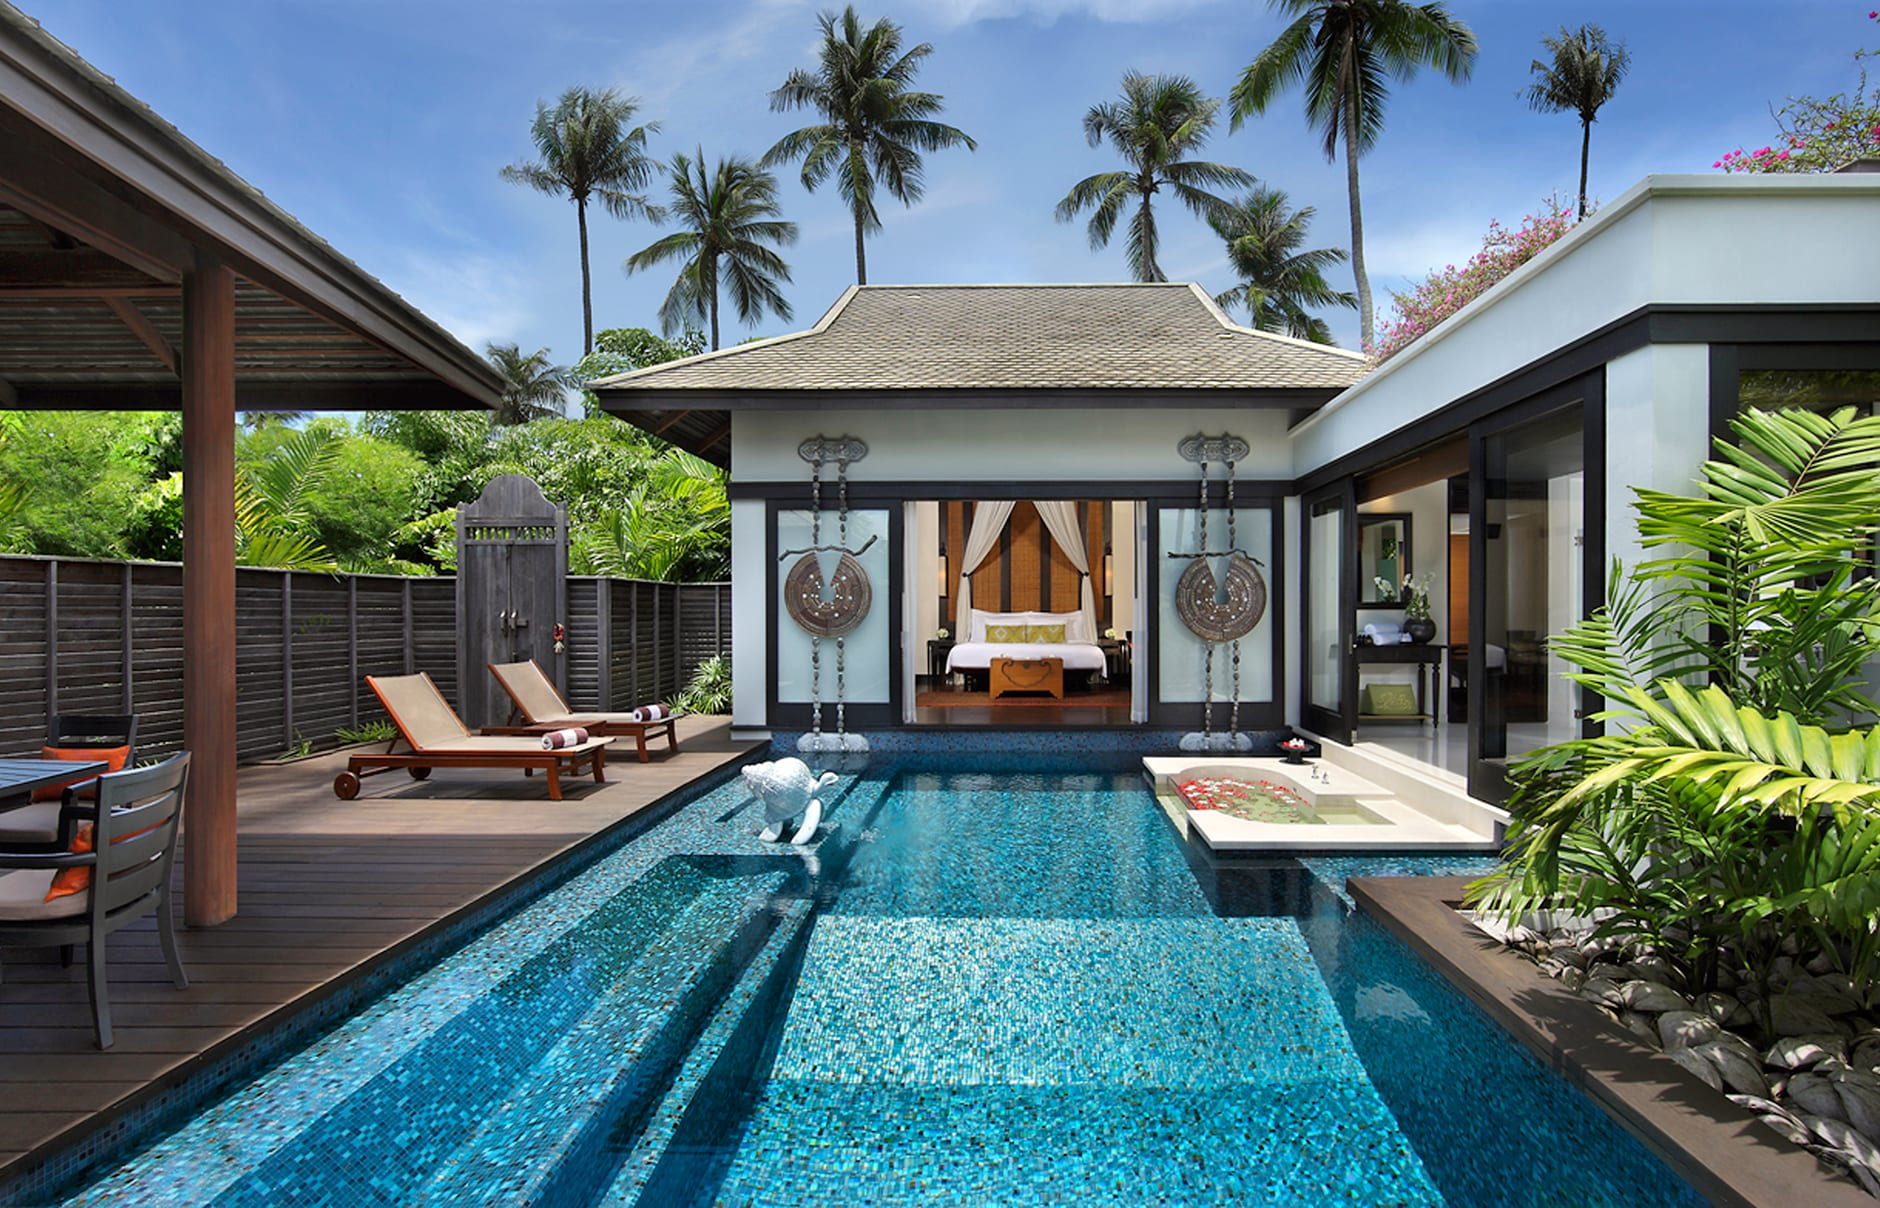 Anantara phuket villas luxury hotels travelplusstyle for Garden pool villa outrigger koh samui